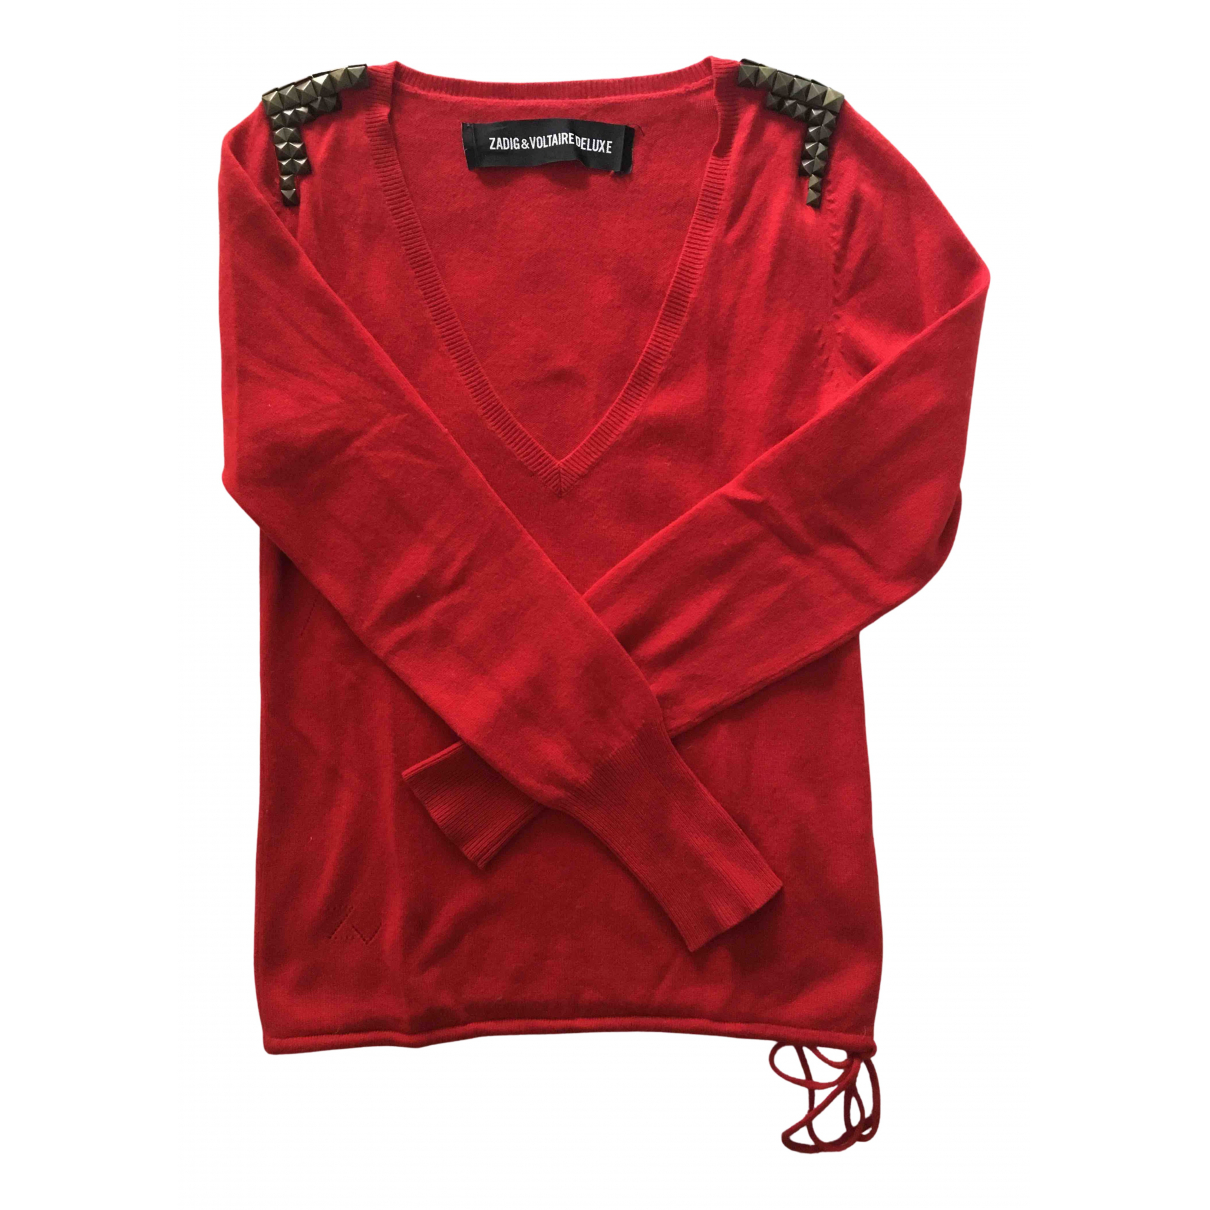 Zadig & Voltaire N Red Cashmere Knitwear for Women S International